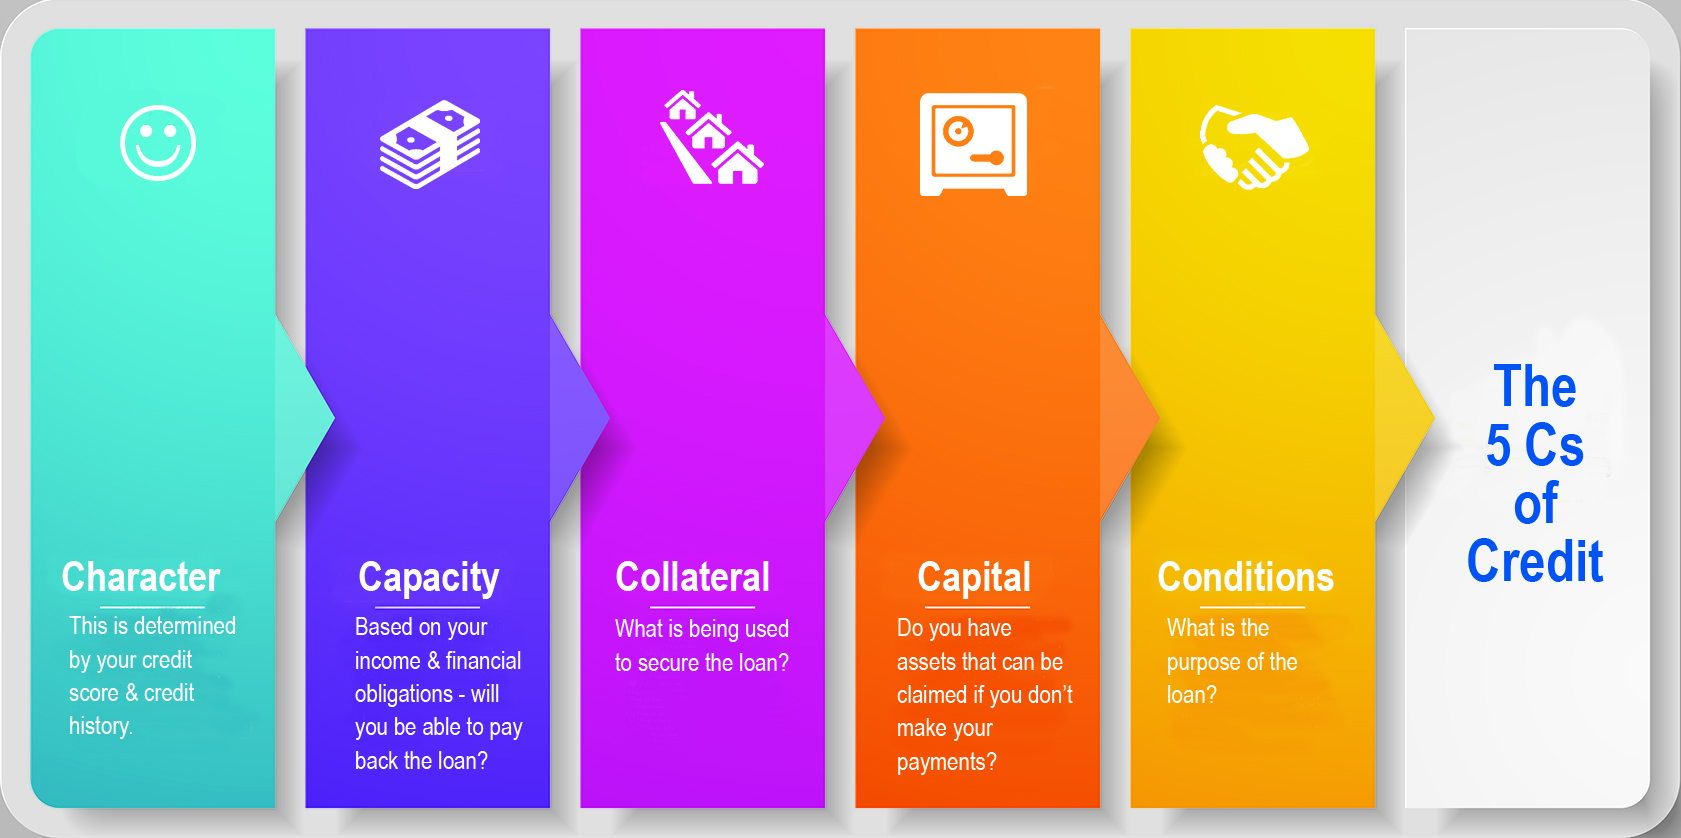 The 5 C's of Credit